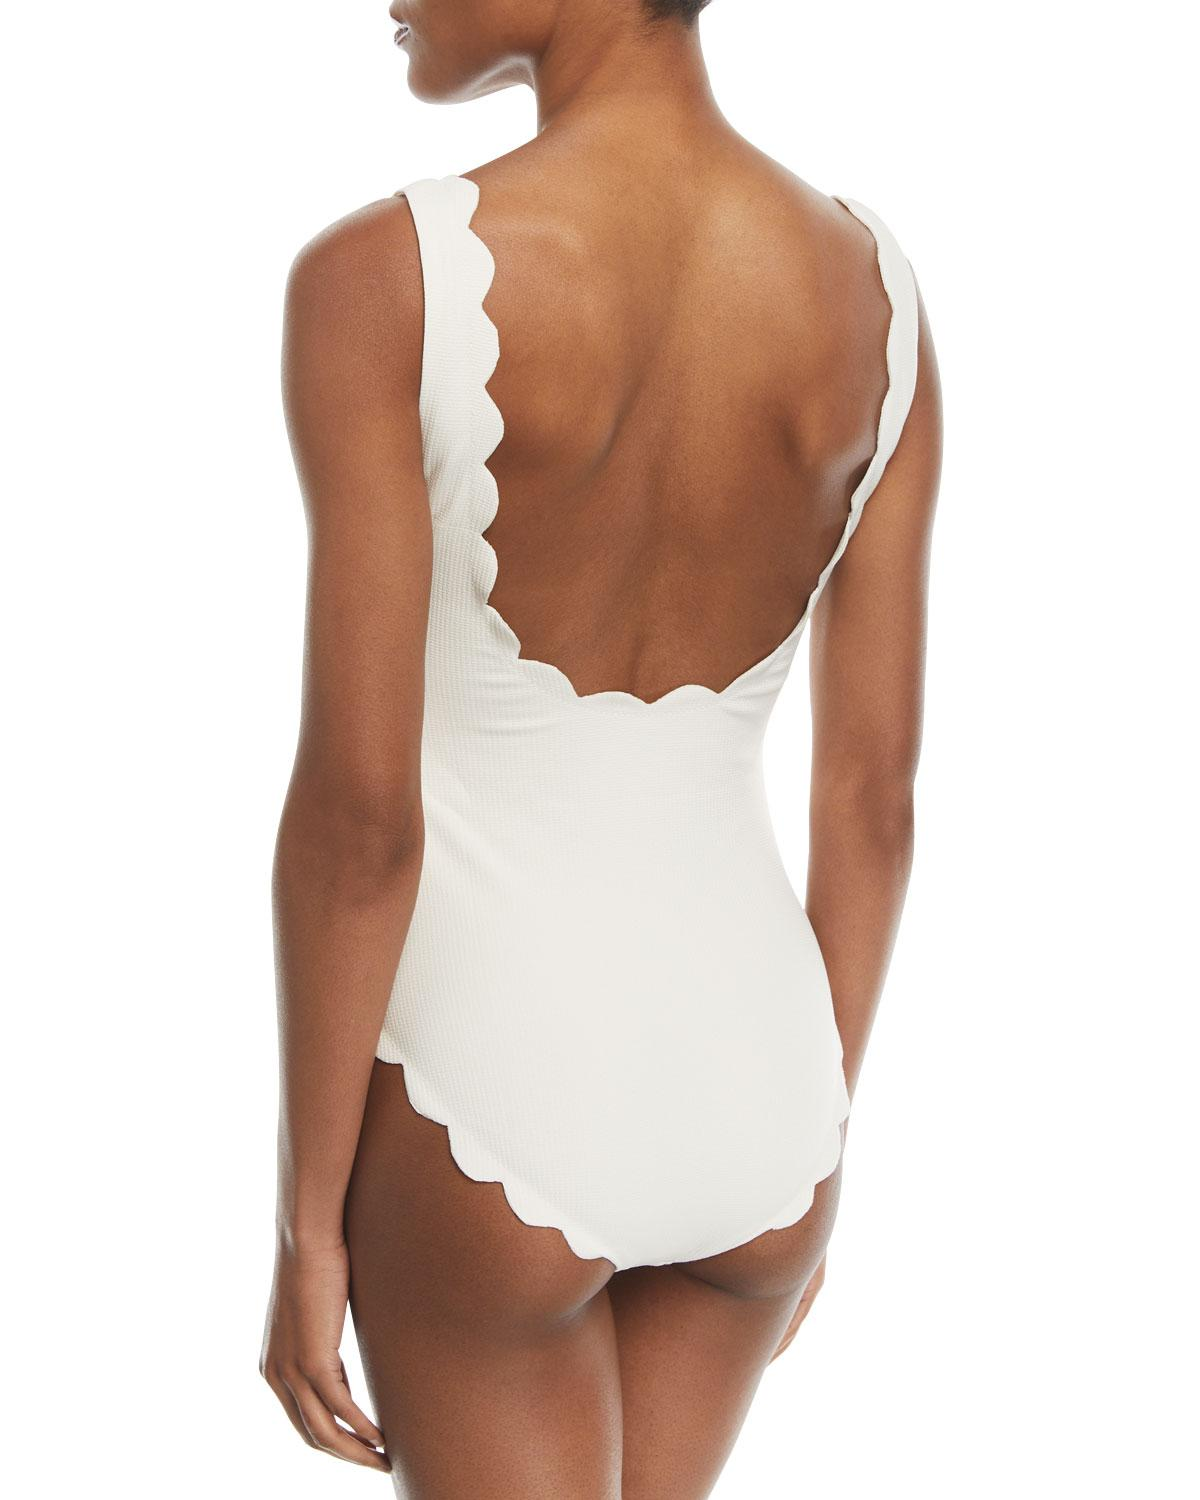 39db731ce0db Lyst - Marysia Swim Palm Springs Scalloped One-piece Swimsuit in White -  Save 5%